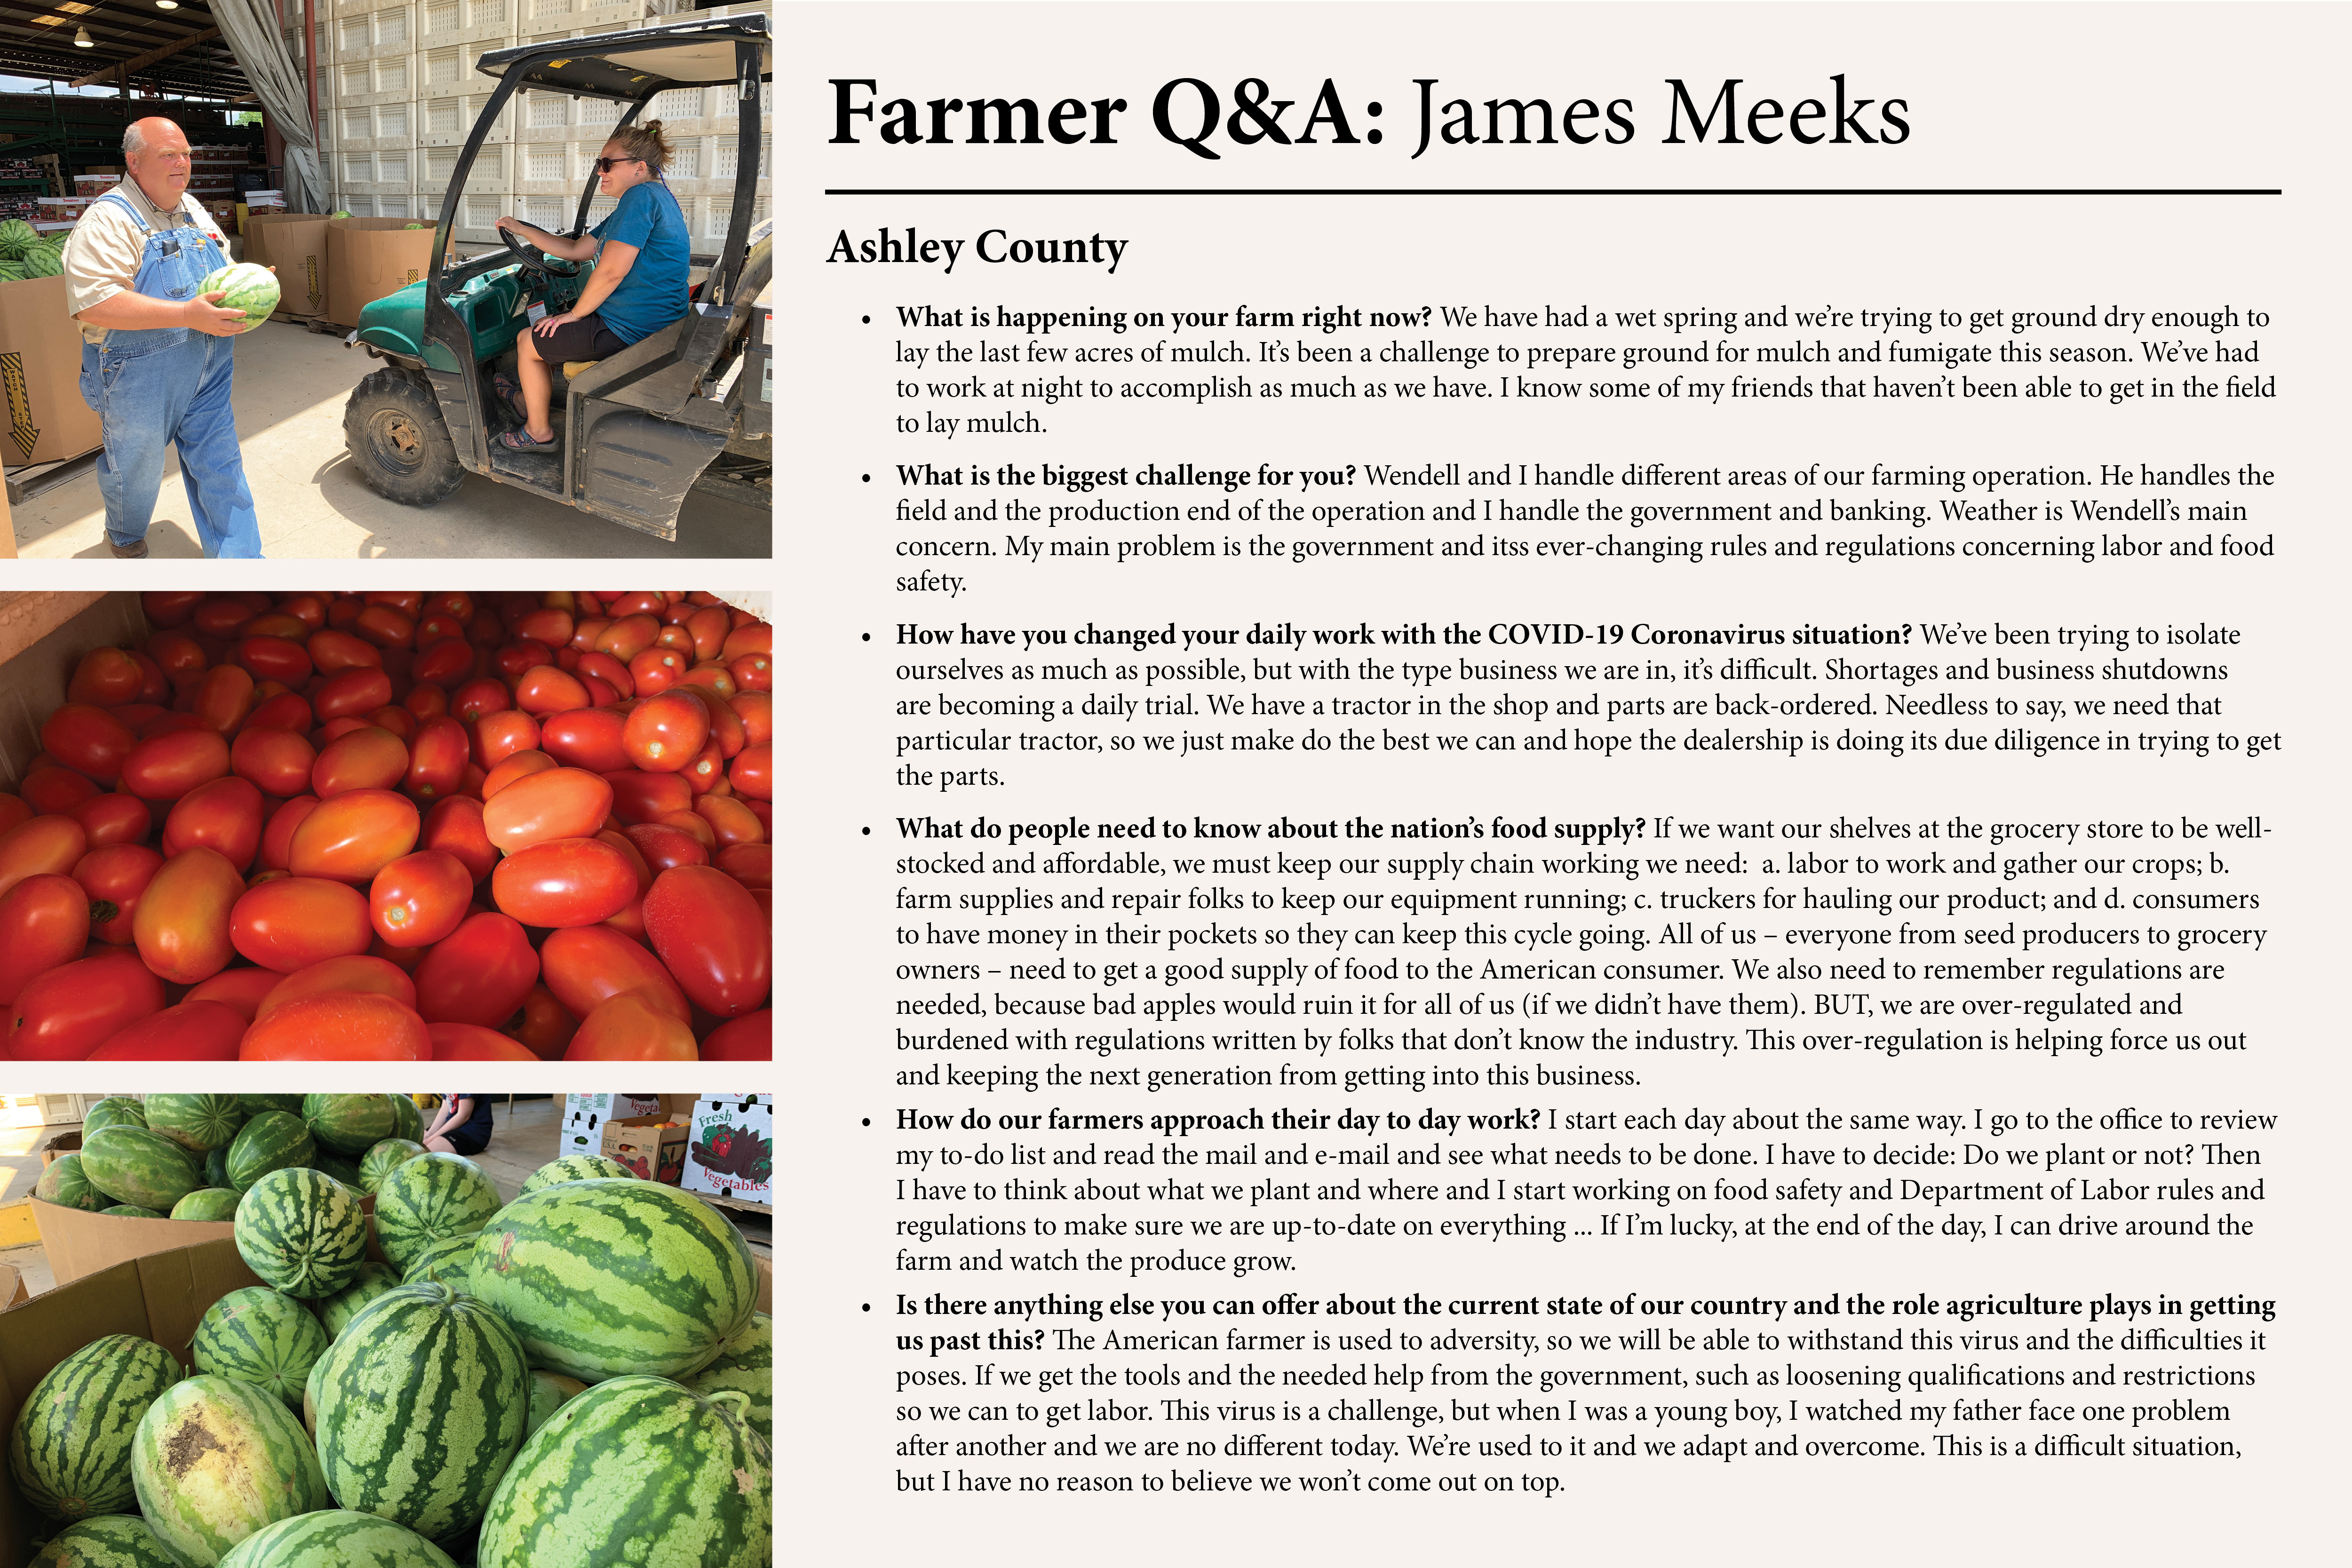 This is an image that contains copy of an interview with James Meeks of Ashley County, a produce grower.